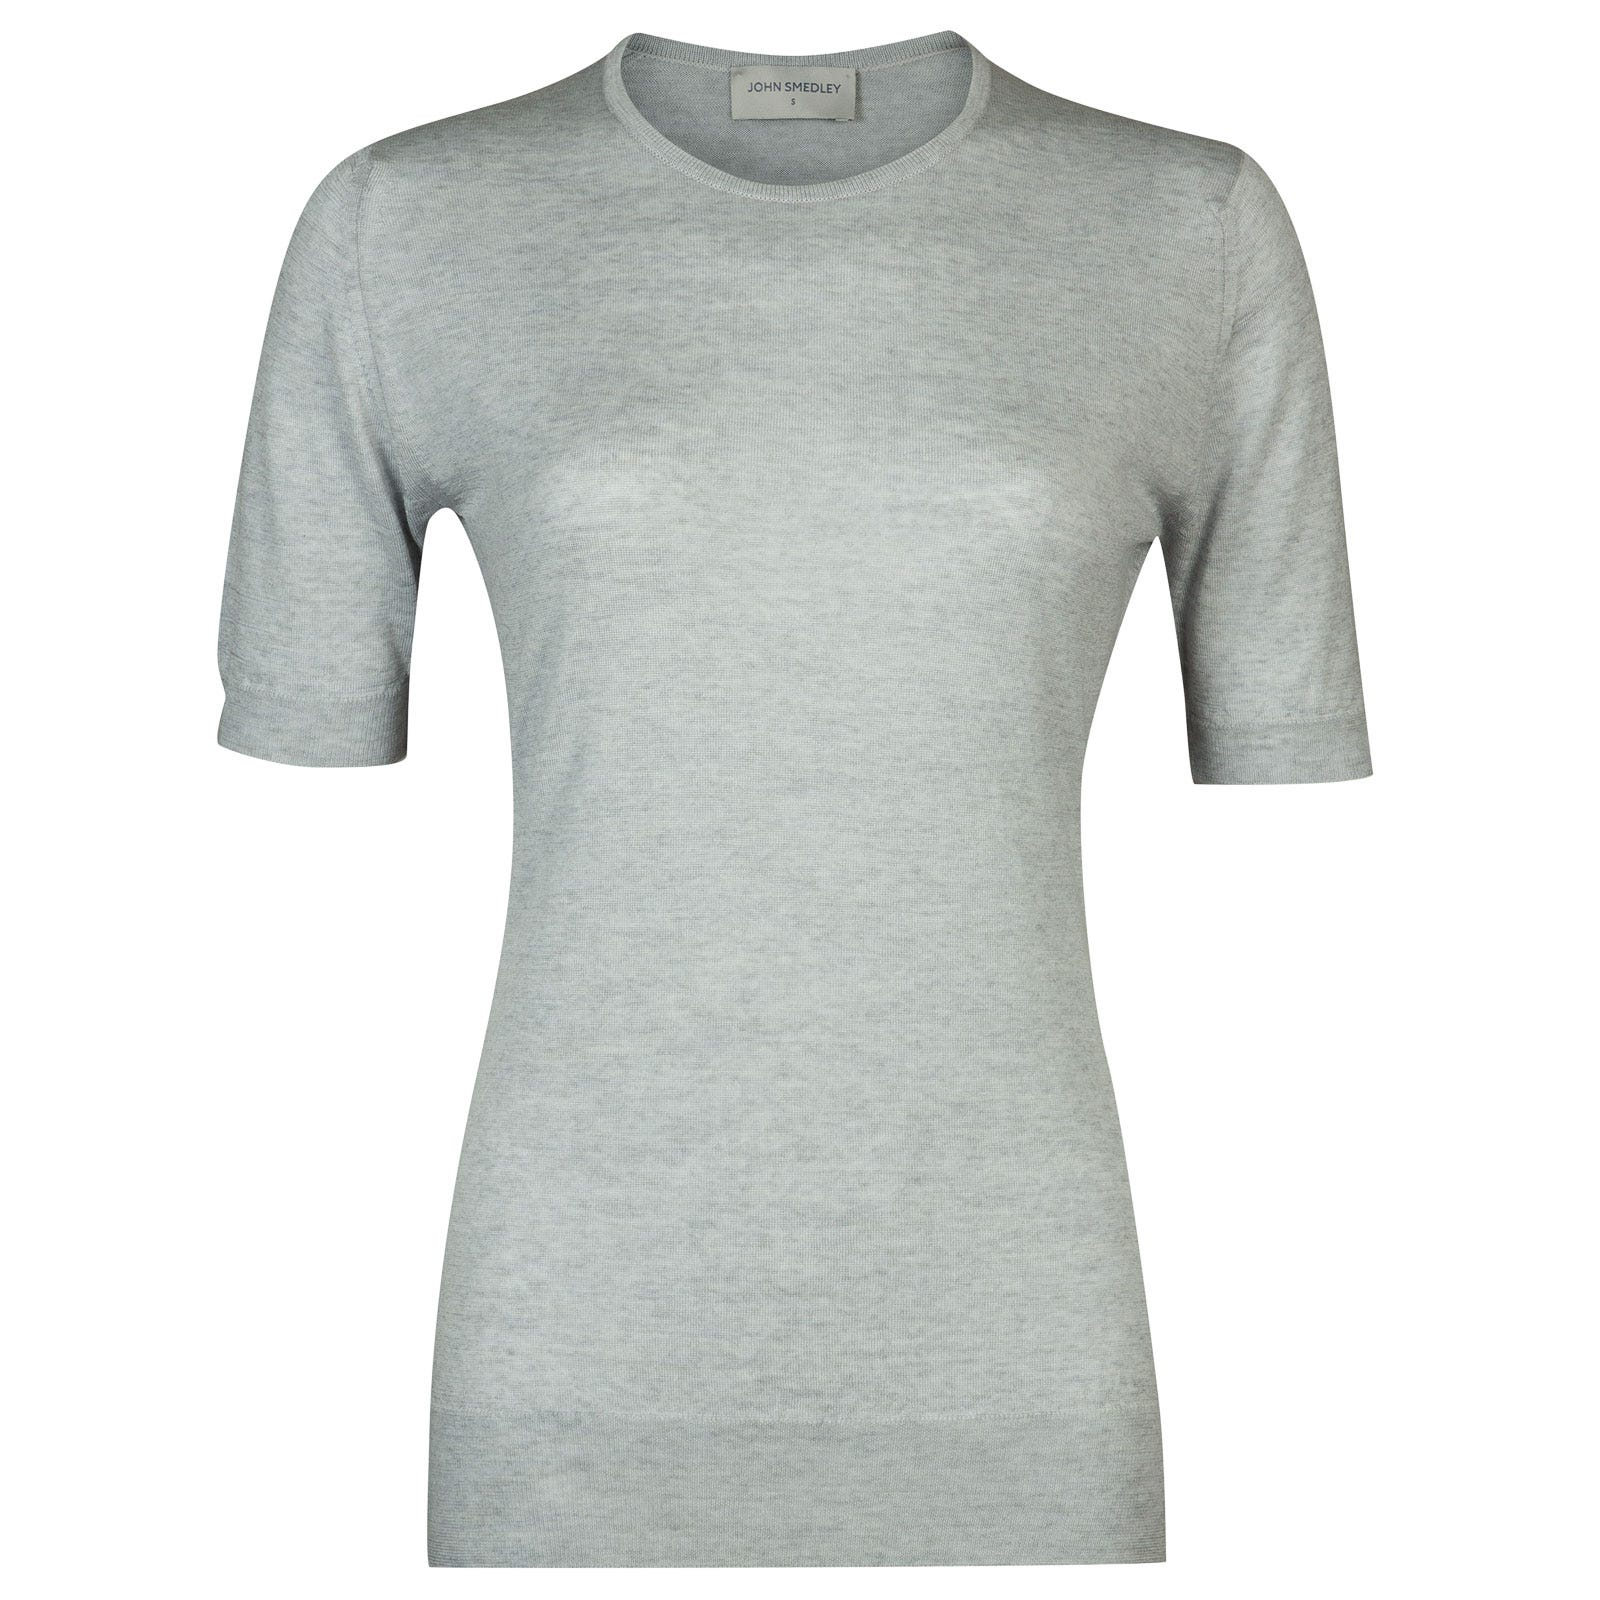 John Smedley rietta Merino Wool Sweater in Bardot Grey-L